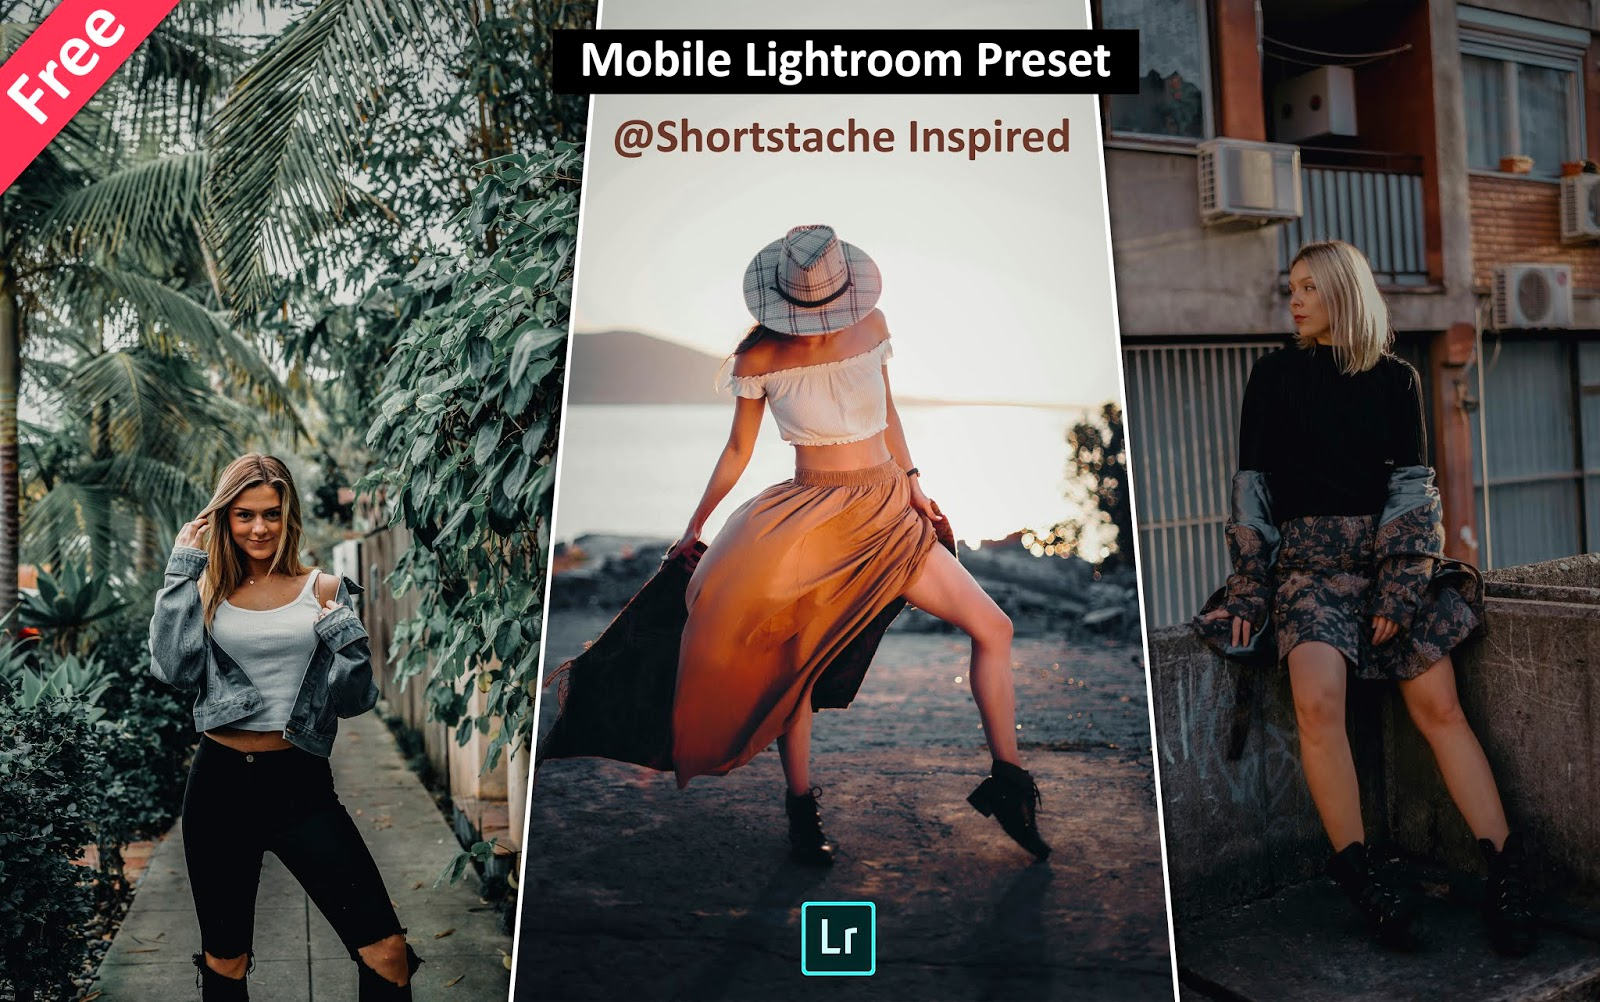 Download Shortstache Inspired Mobile Lightroom Presets for Free | How to Edit Photos Like @shortstache in Mobile Lightroom